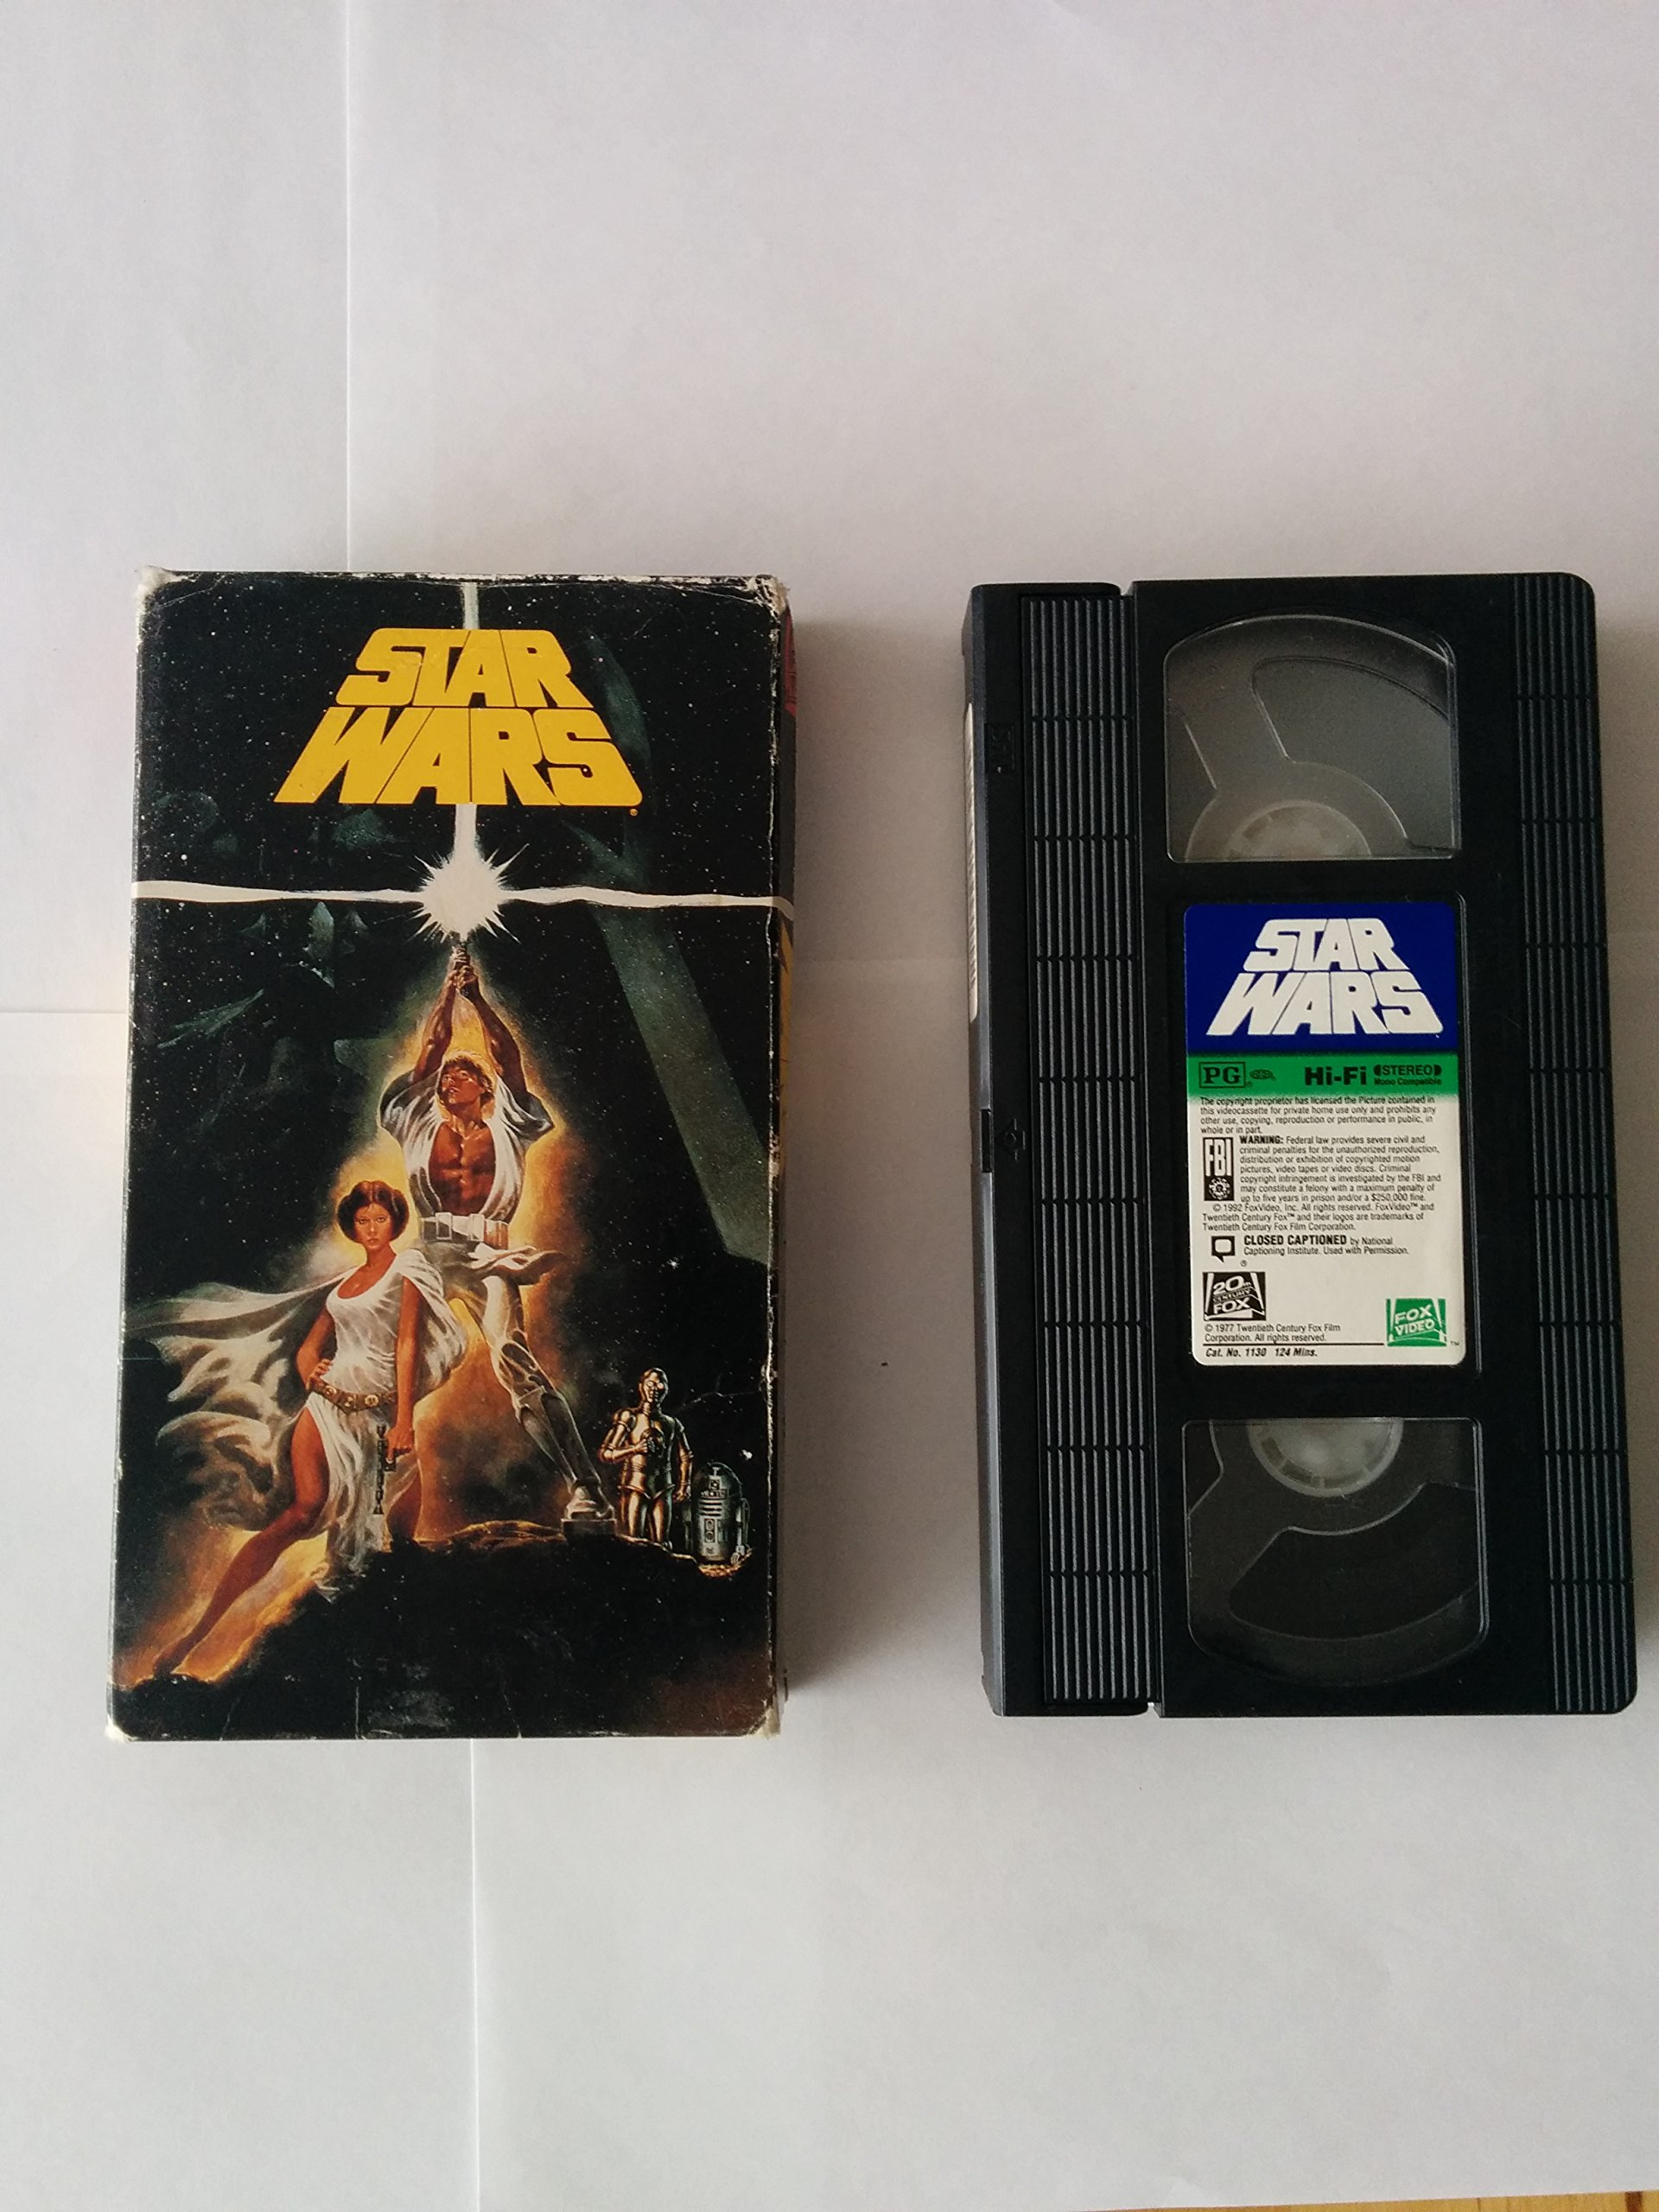 Star Wars Vhs Buy Online In Brunei Mark Hamillharrison Fordgeorge Lucas Products In Brunei See Prices Reviews And Free Delivery Over Bnd100 Desertcart